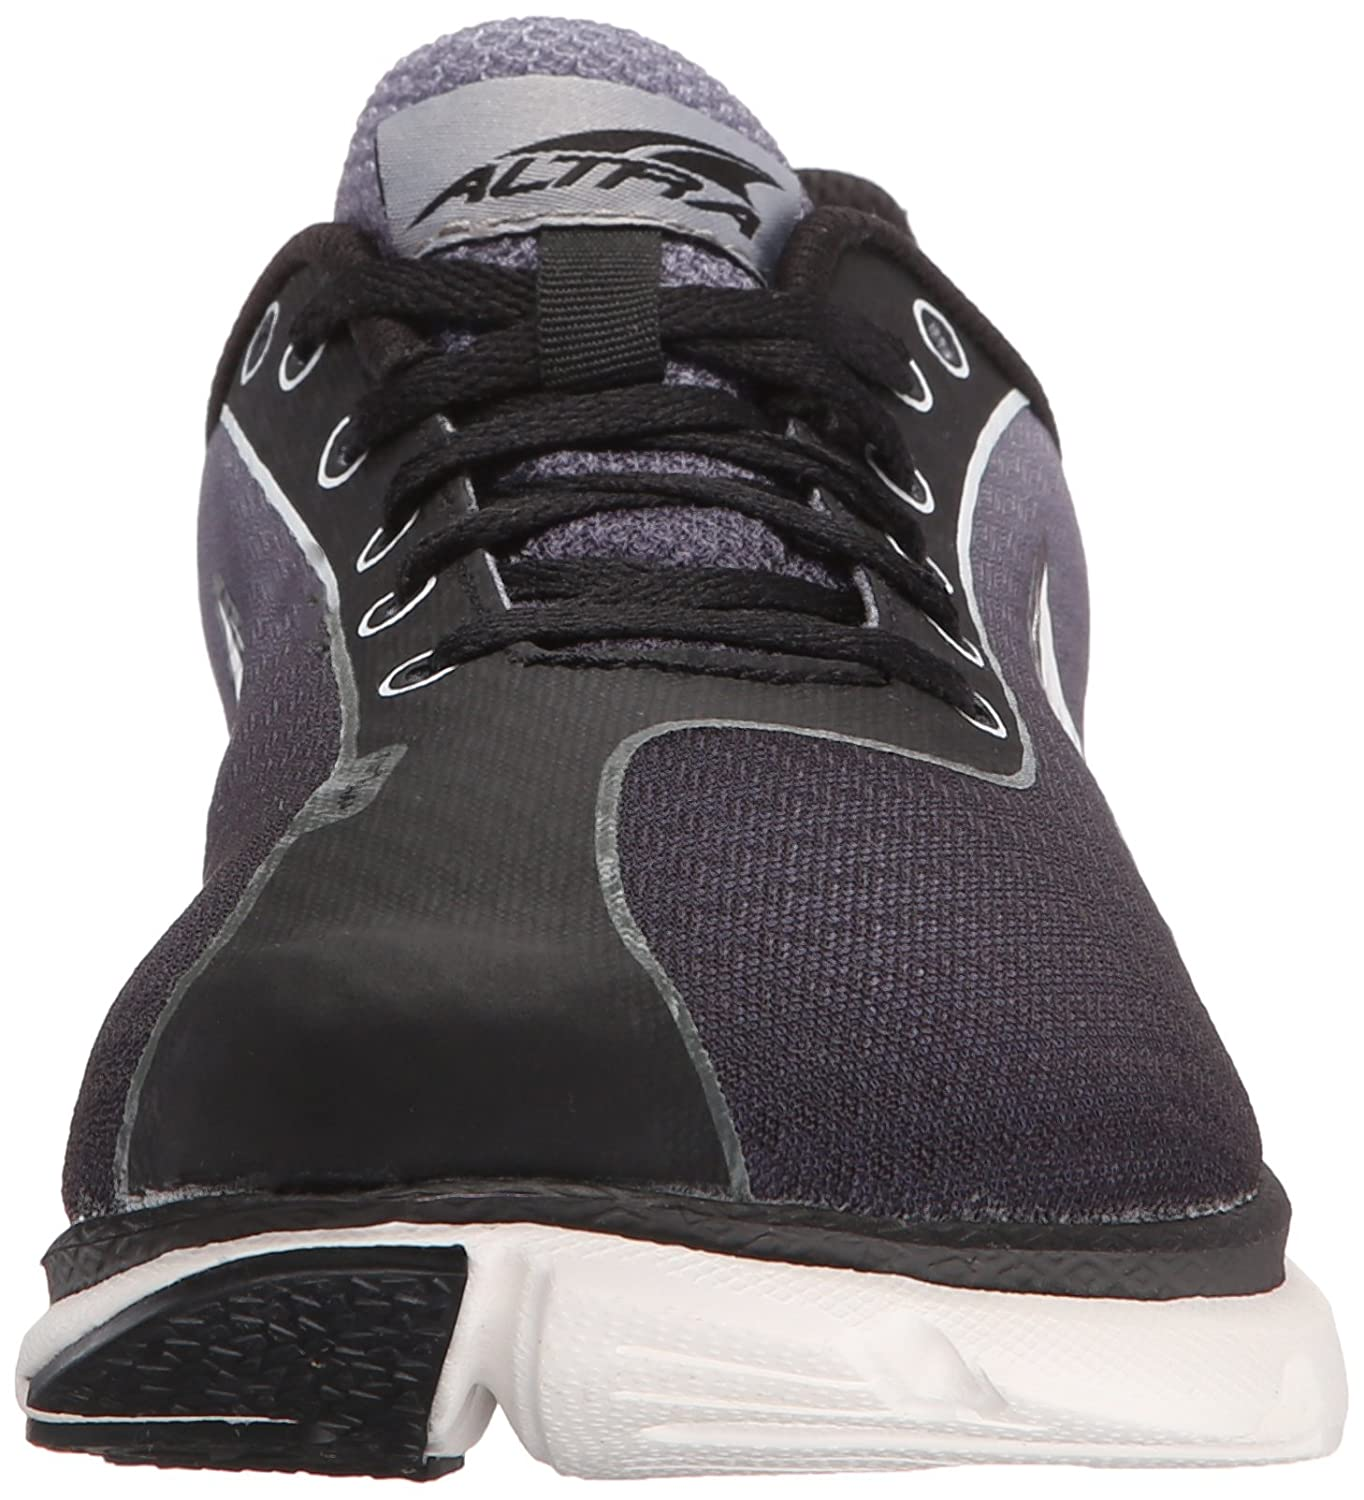 Altra Women's One 2.5 Running US|Black Shoe B01B7BPL2M 11 B(M) US|Black Running df97c9